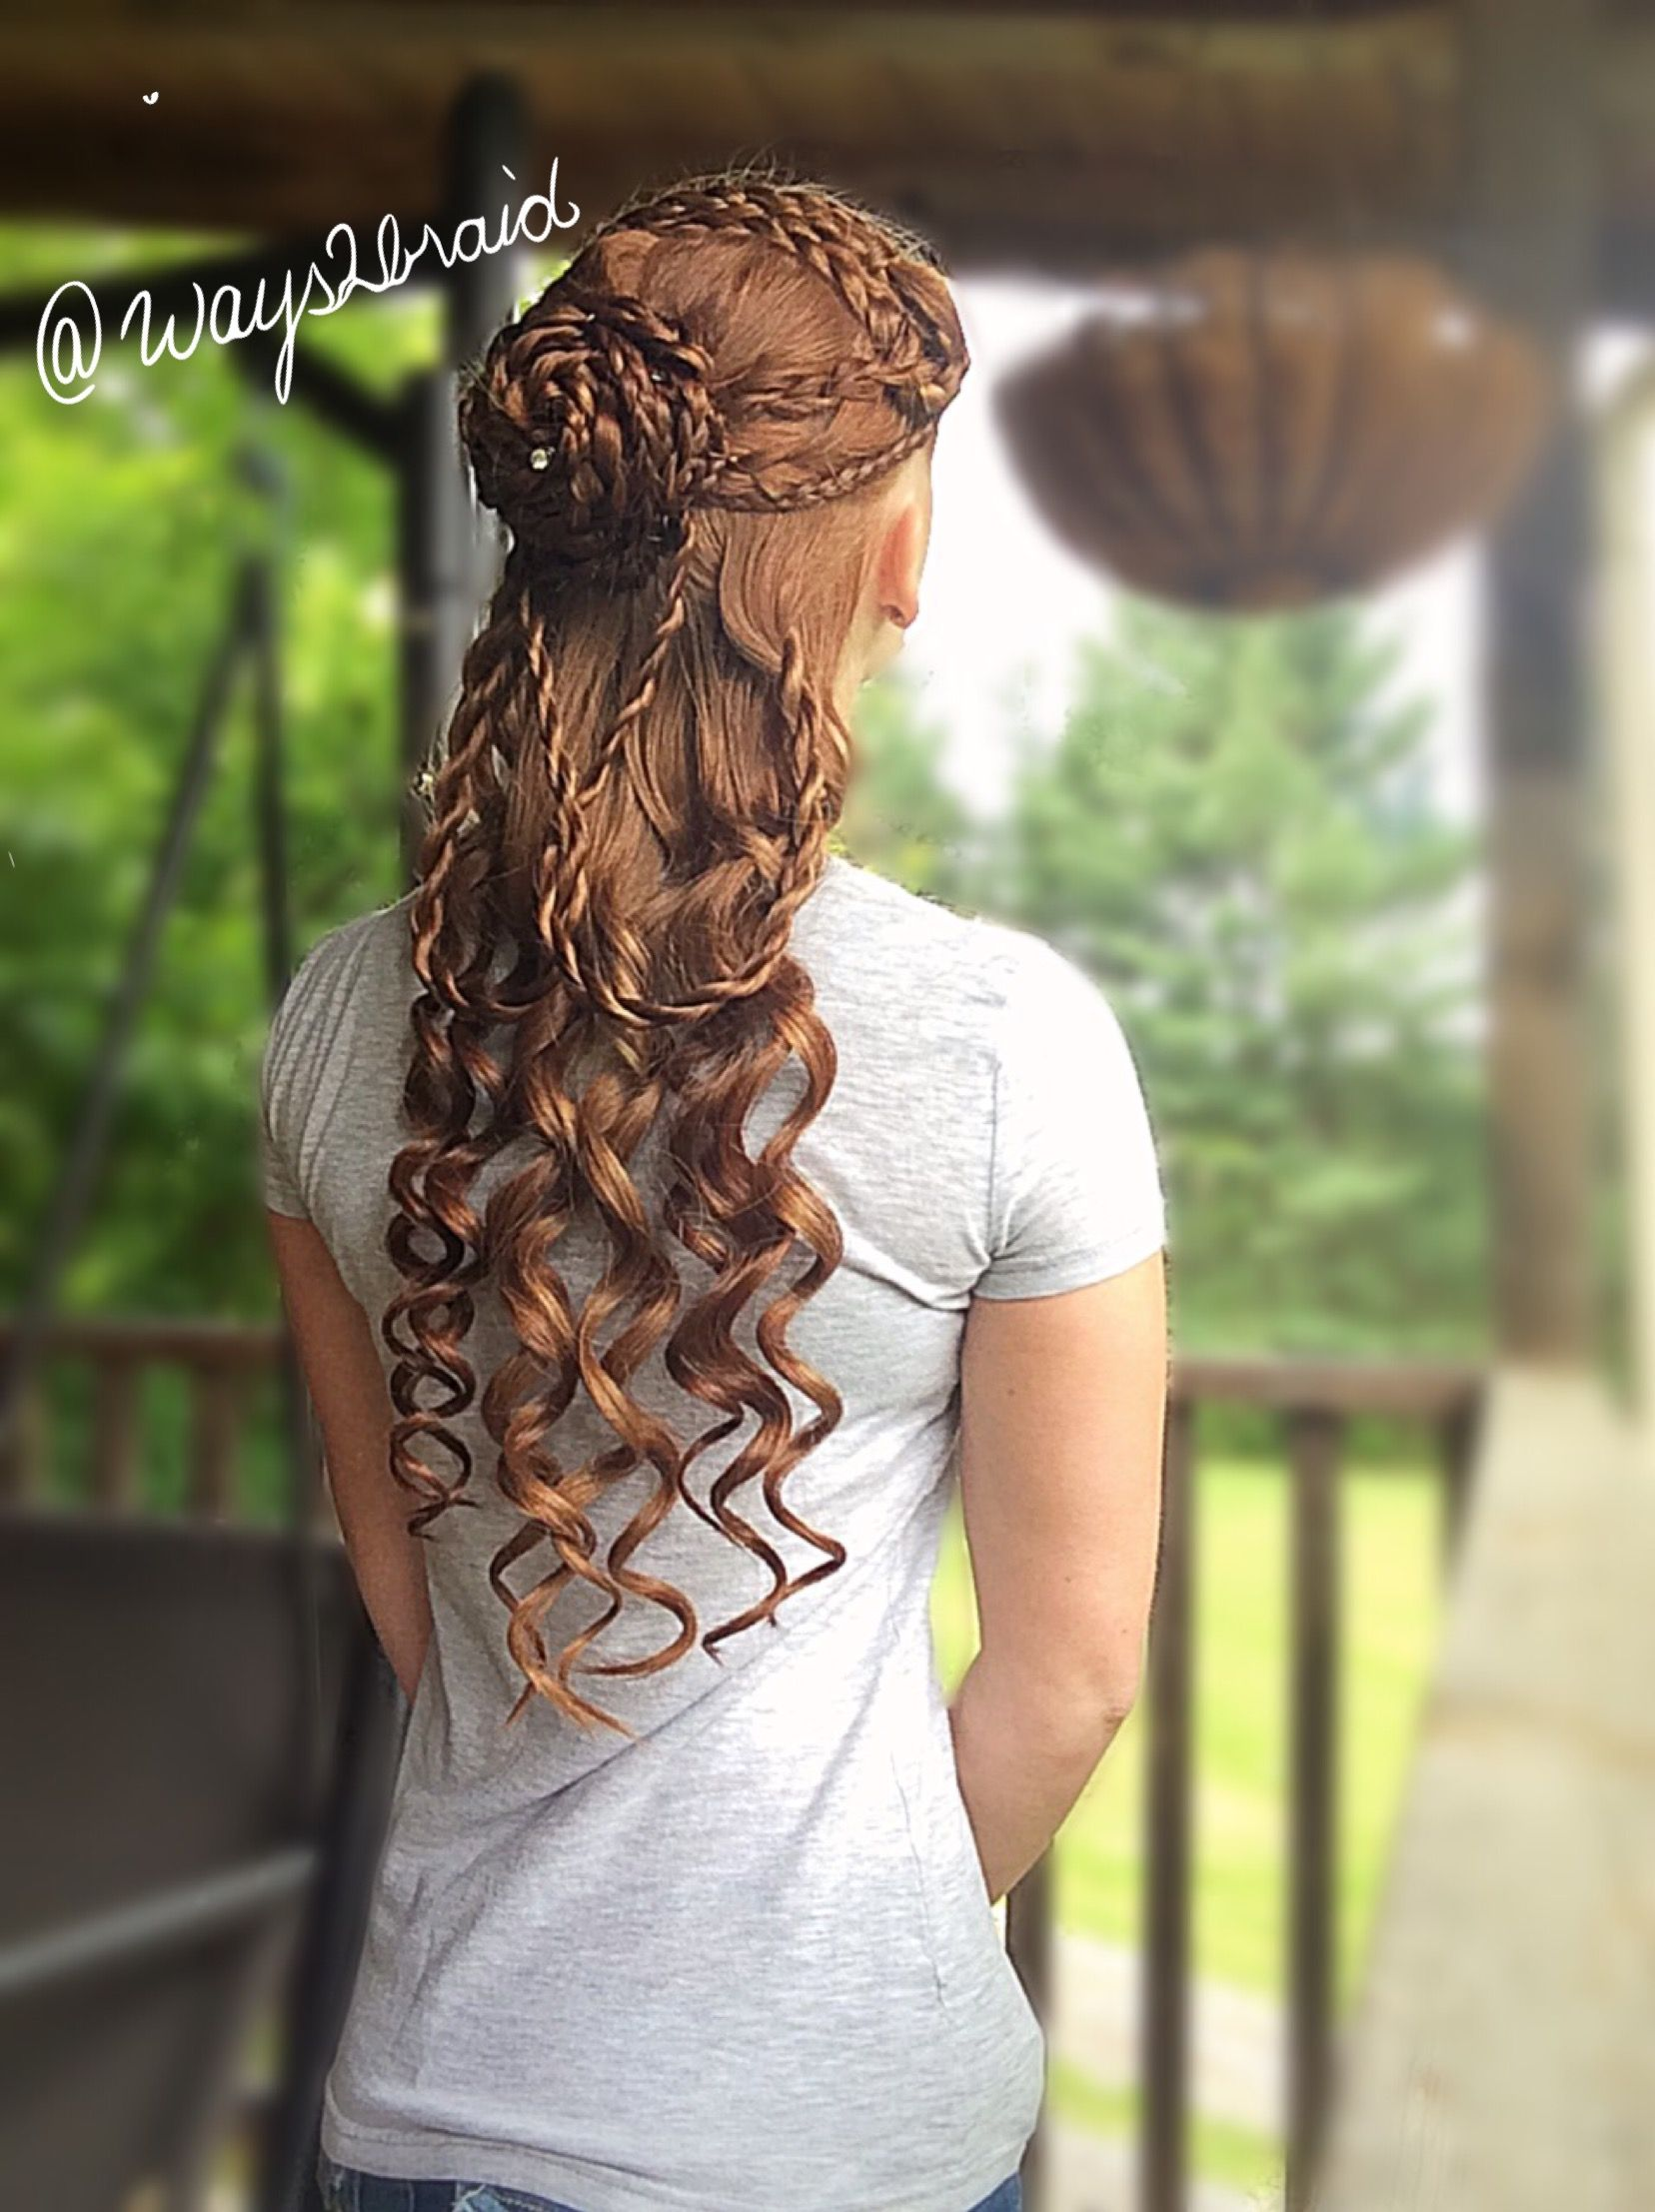 Star Wars Padme Inspired Hairstyle From Phantom Menace Star Wars Hair Hair Styles Star Wars Wedding Dress